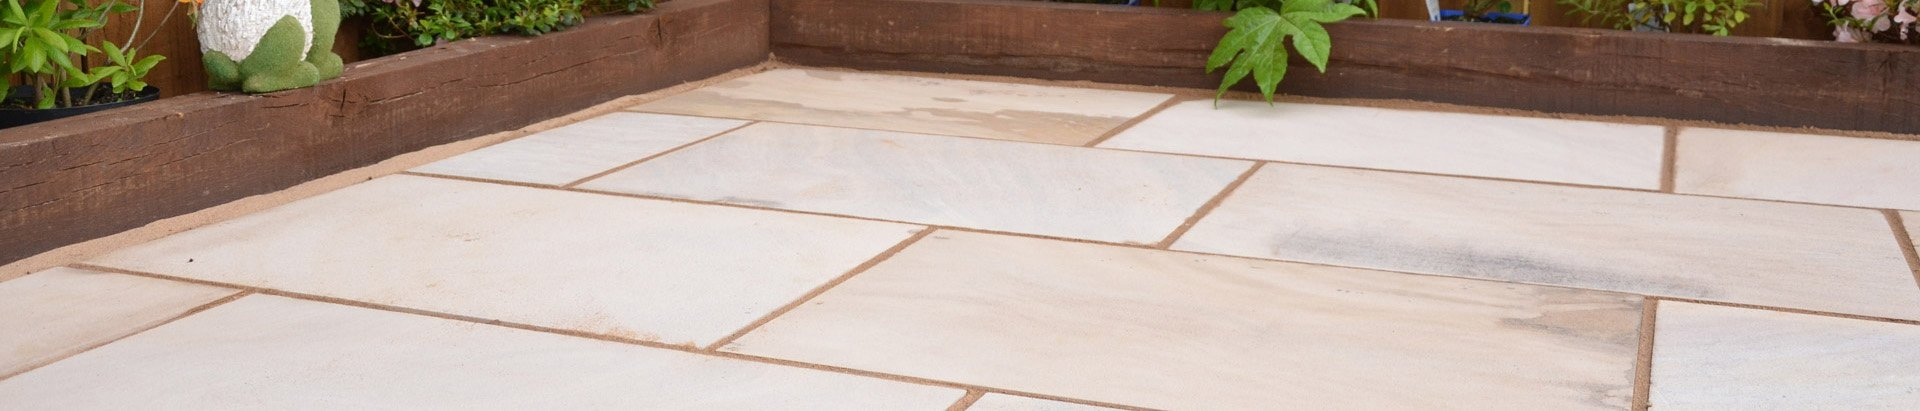 our natural stone collection